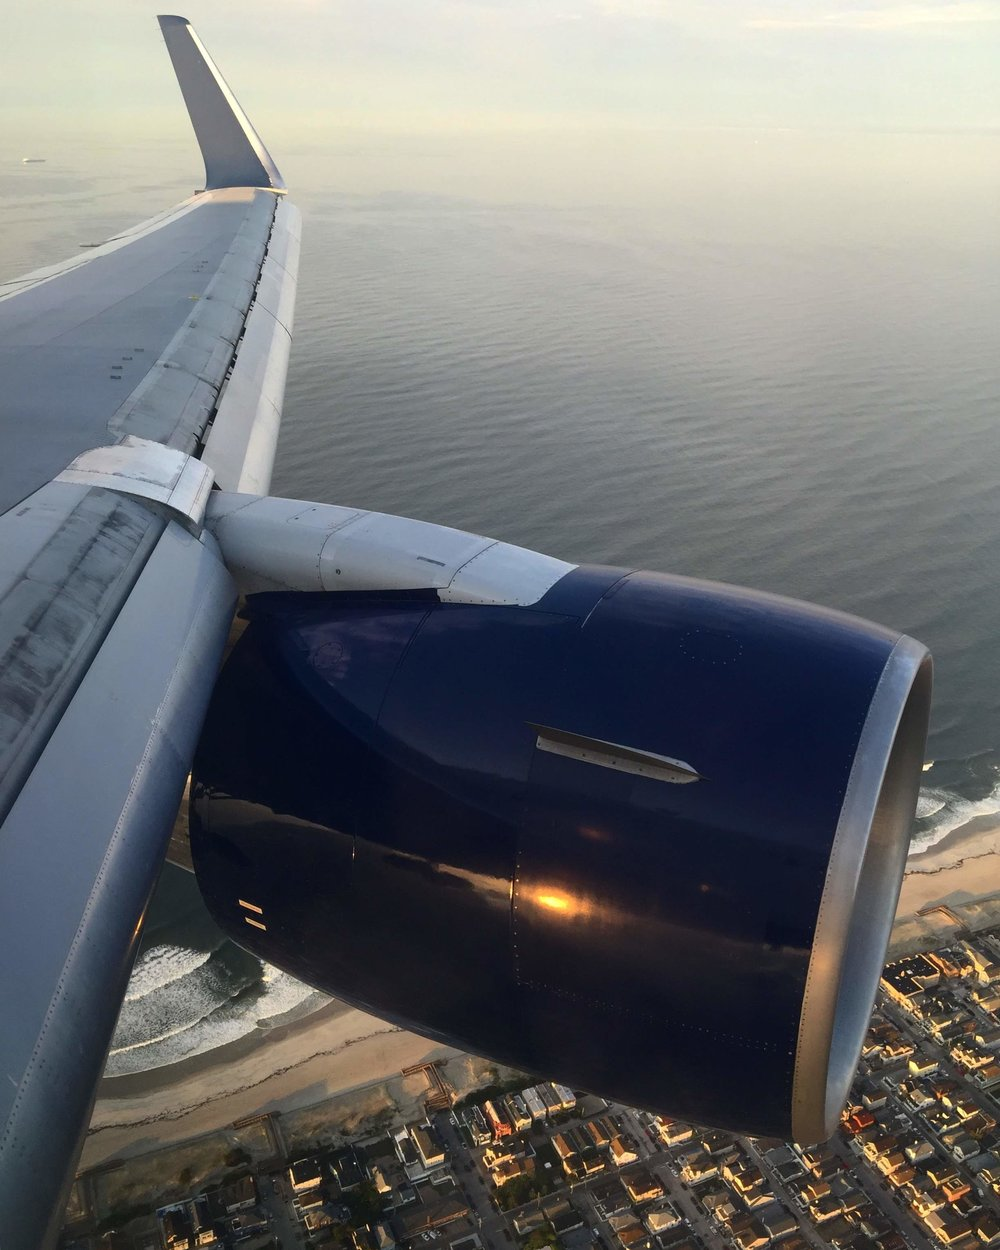 Moments before touching down in New York